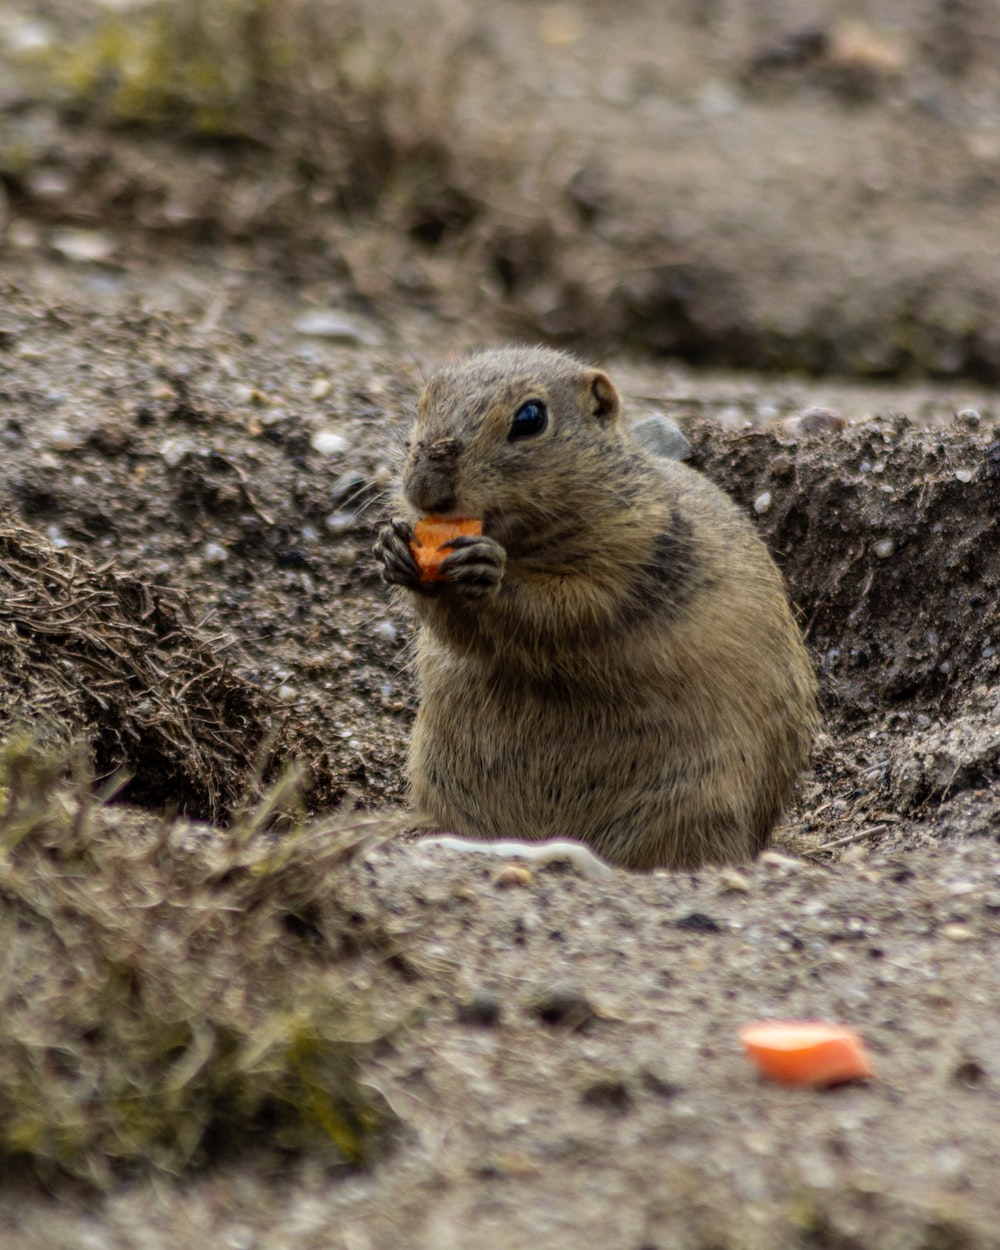 brown rodent eating food